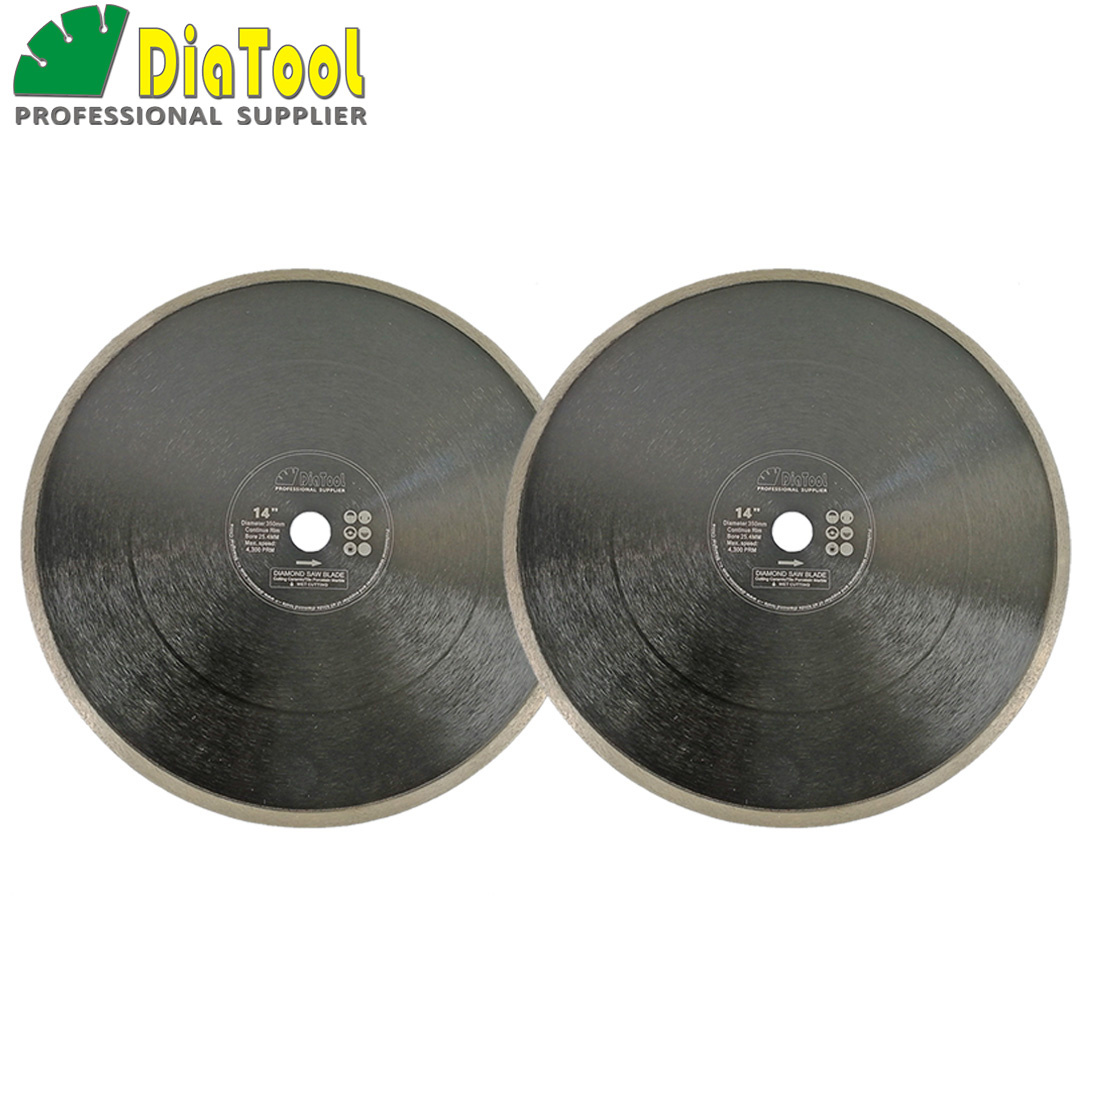 DIATOOL 2pcs Dia 14 inch Hot-pressed Continue Rim Diamond Blades Cutting Disc 350mm Porcelain Tile Ceramic Marble Saw Blade Disk кисть revell 0